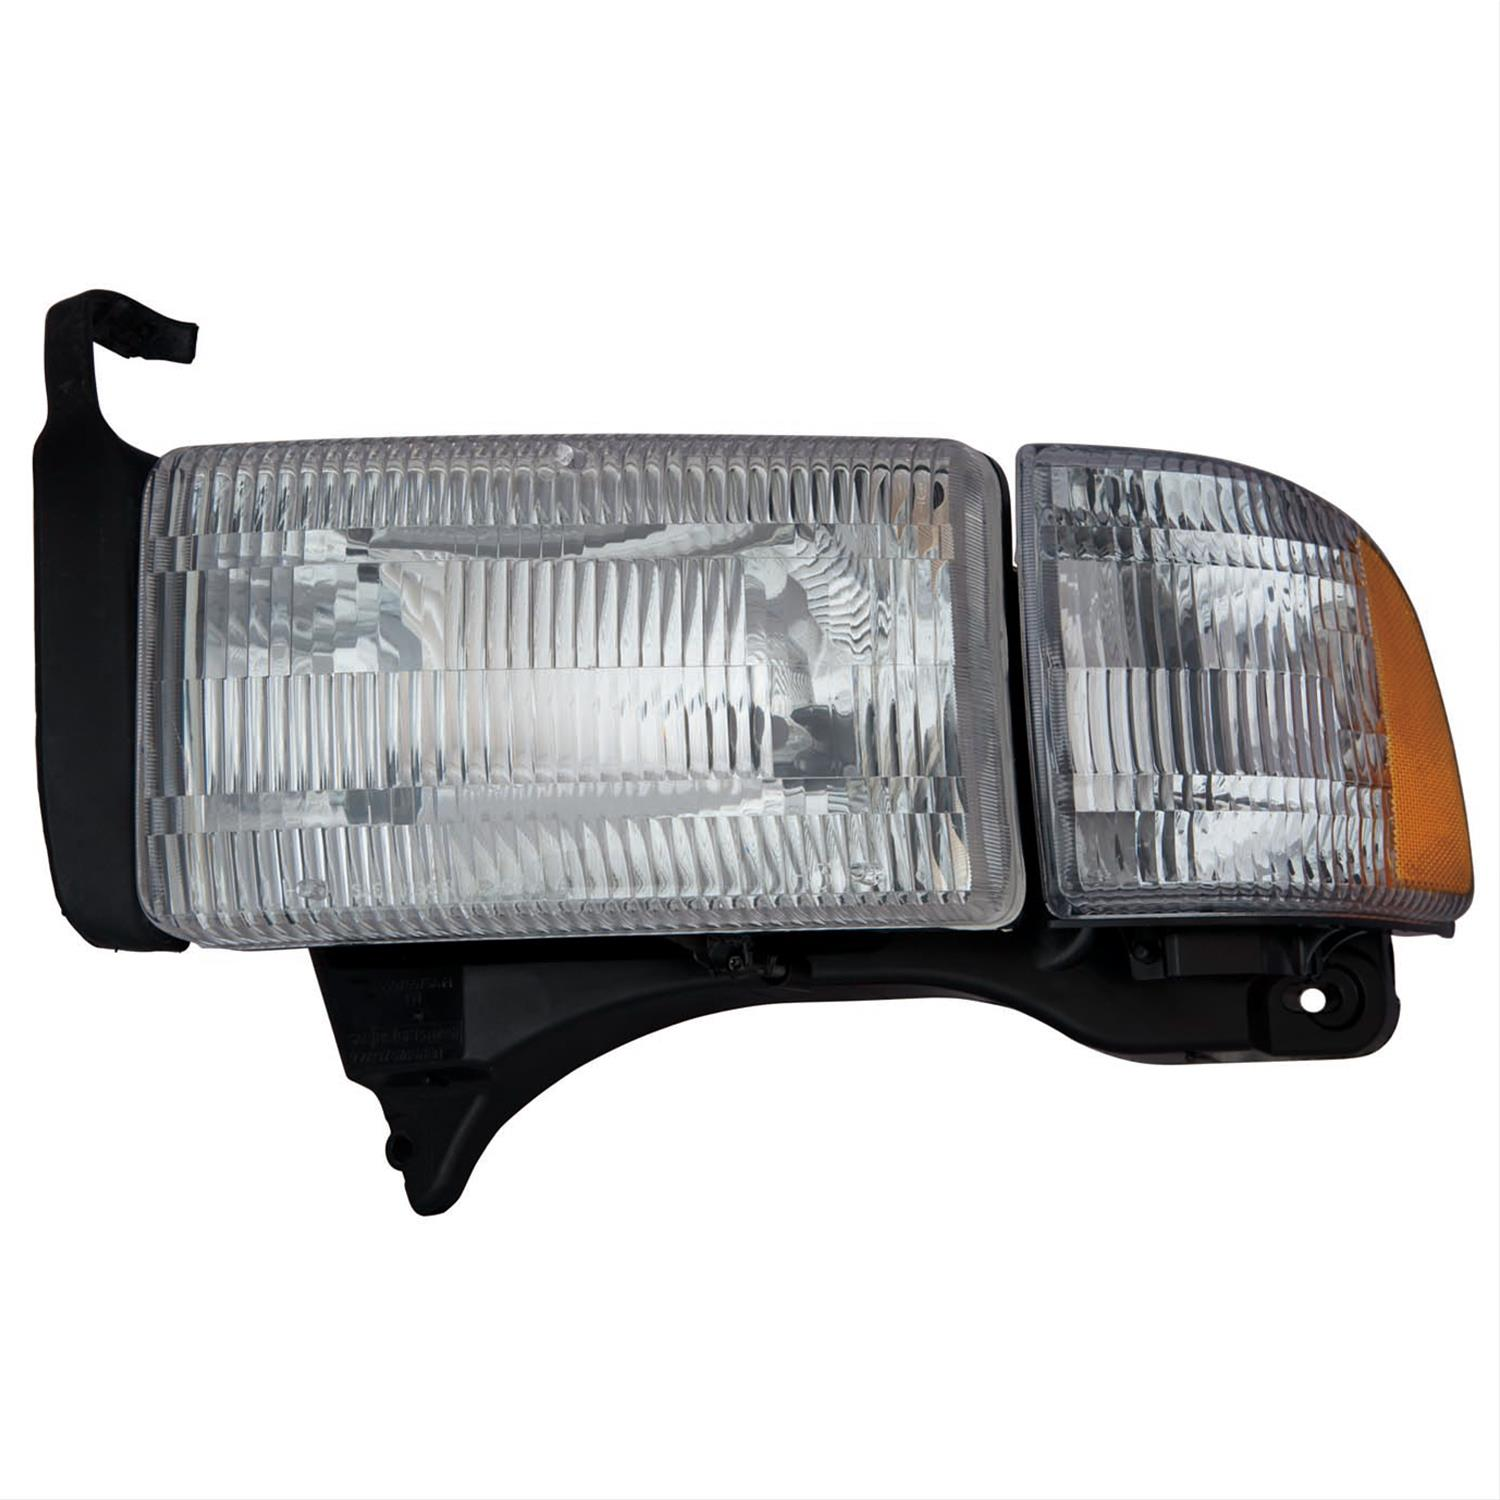 2002 Dodge Ram 2500 Body Parts Headlight Emblies Ch2502101c Free Shipping On Orders Over 99 At Summit Racing